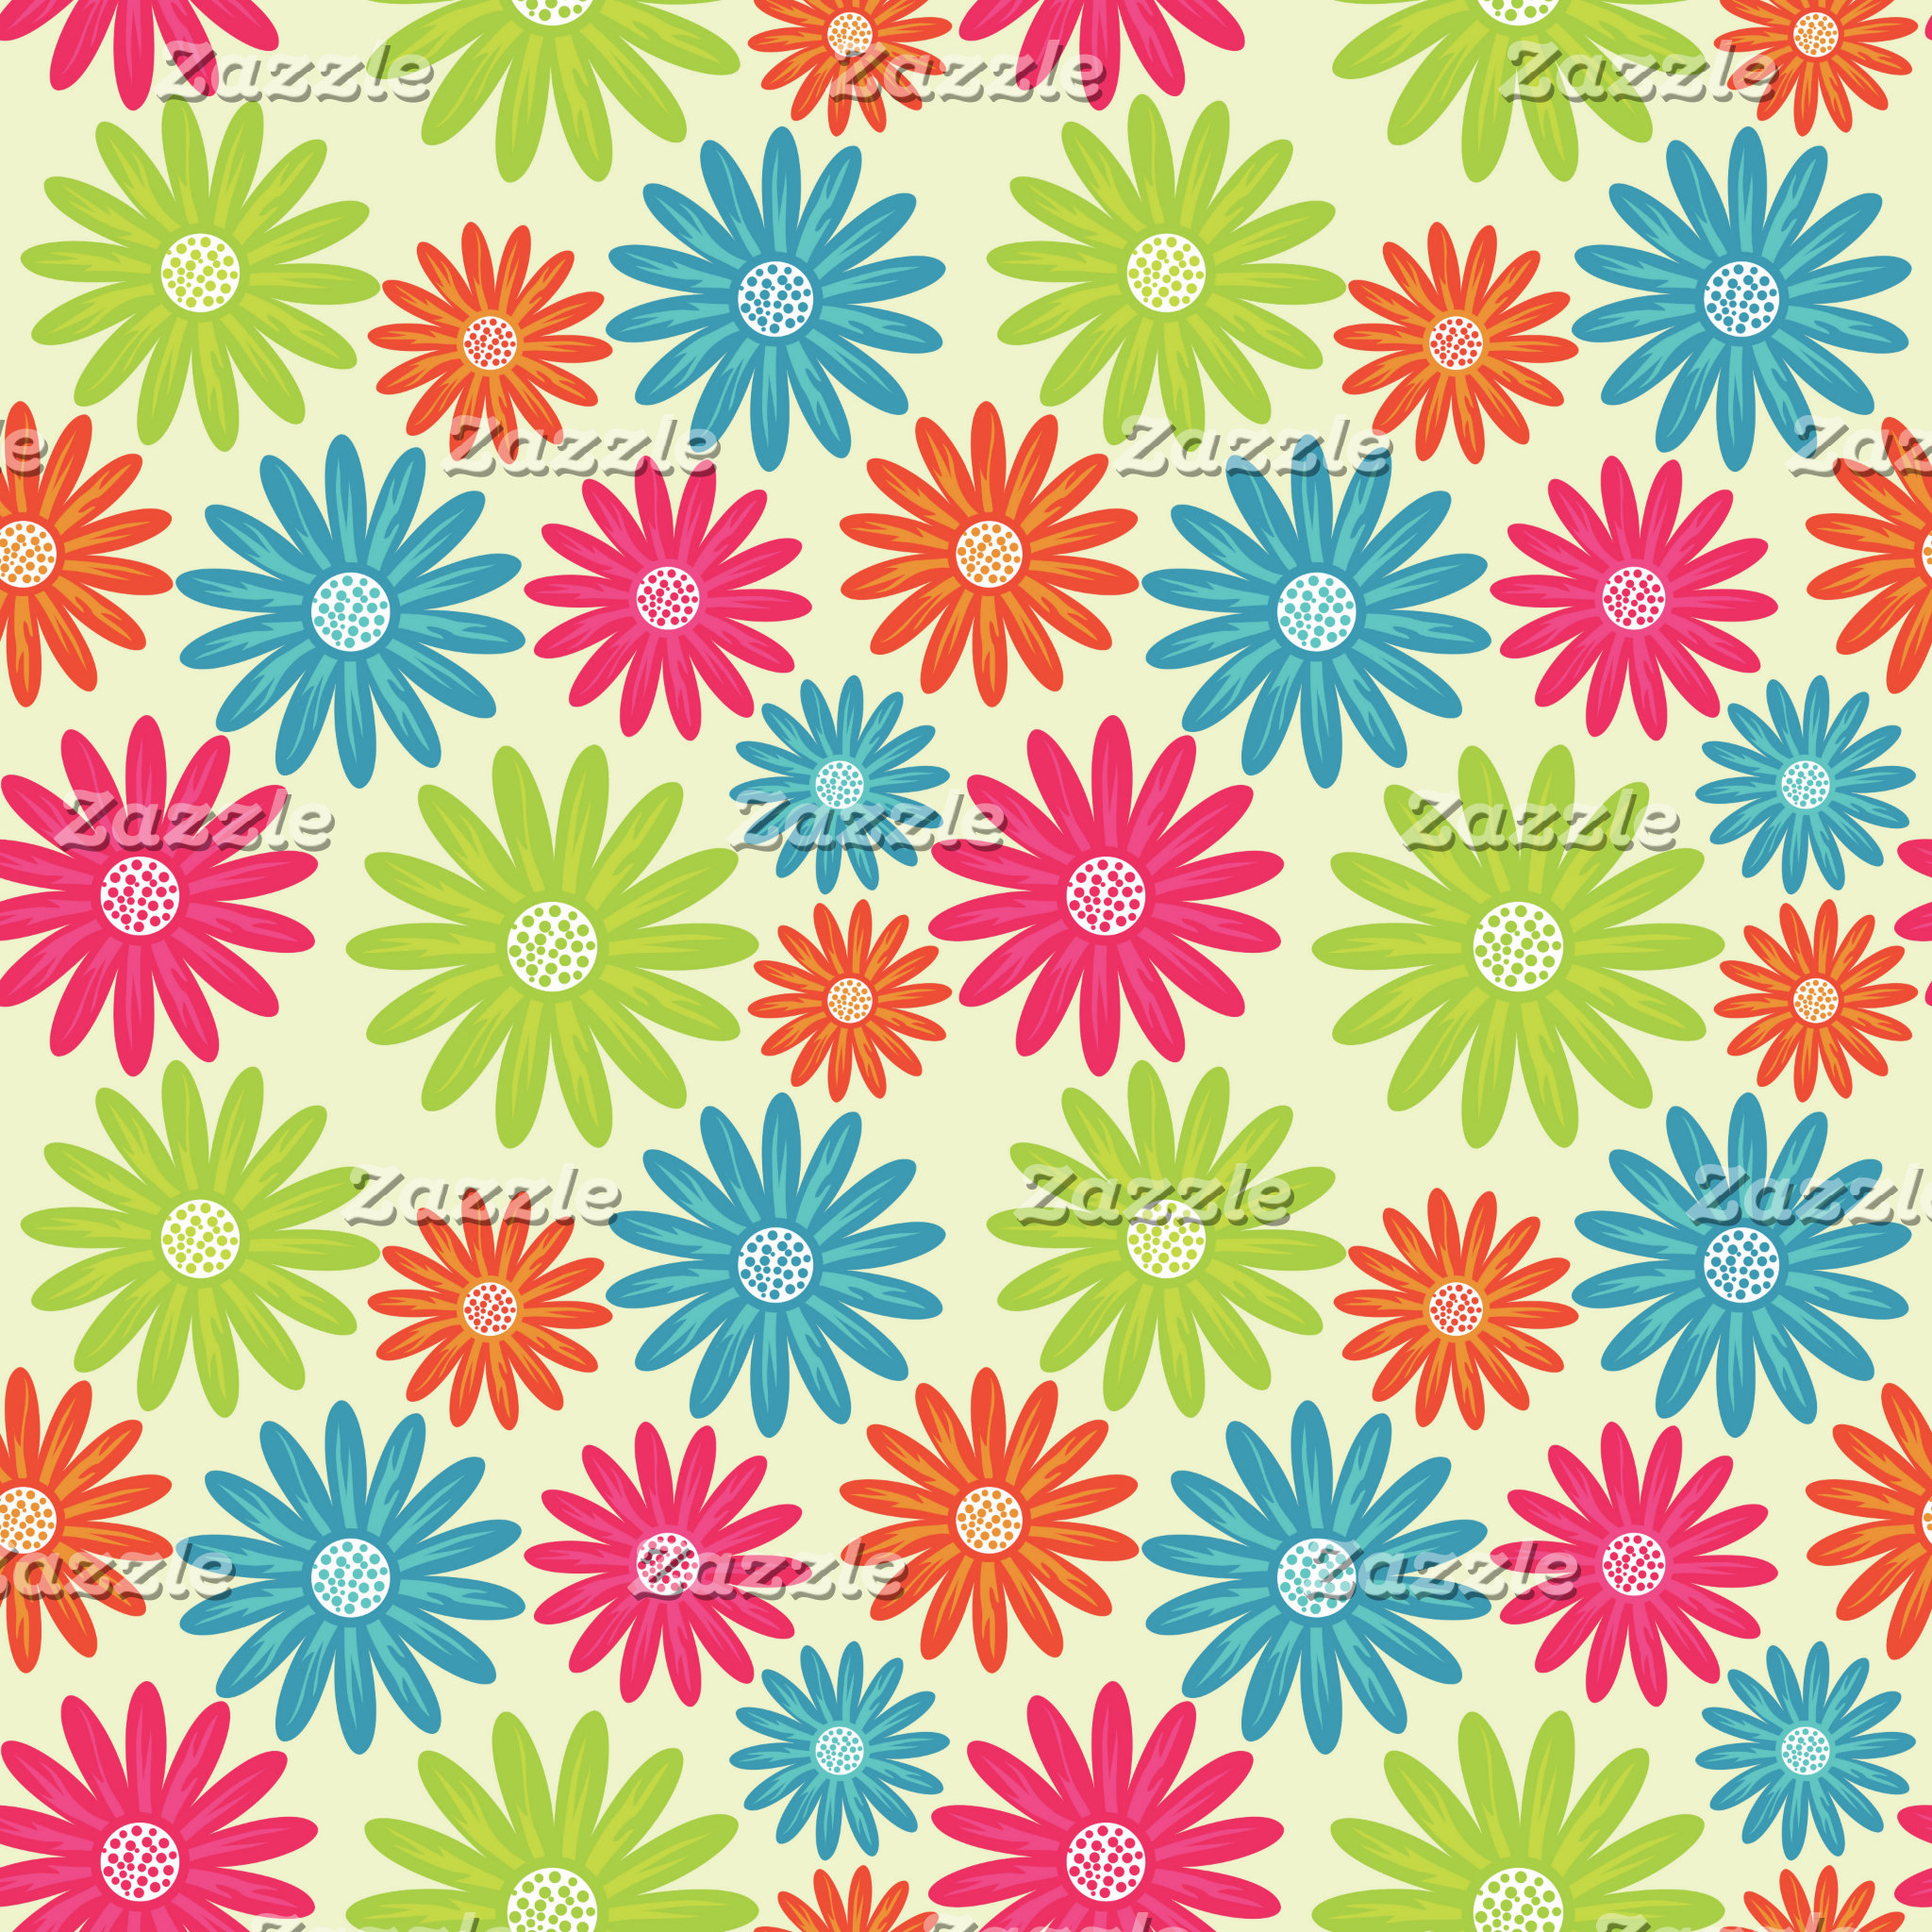 ALL THINGS BRIGHT DAISIES